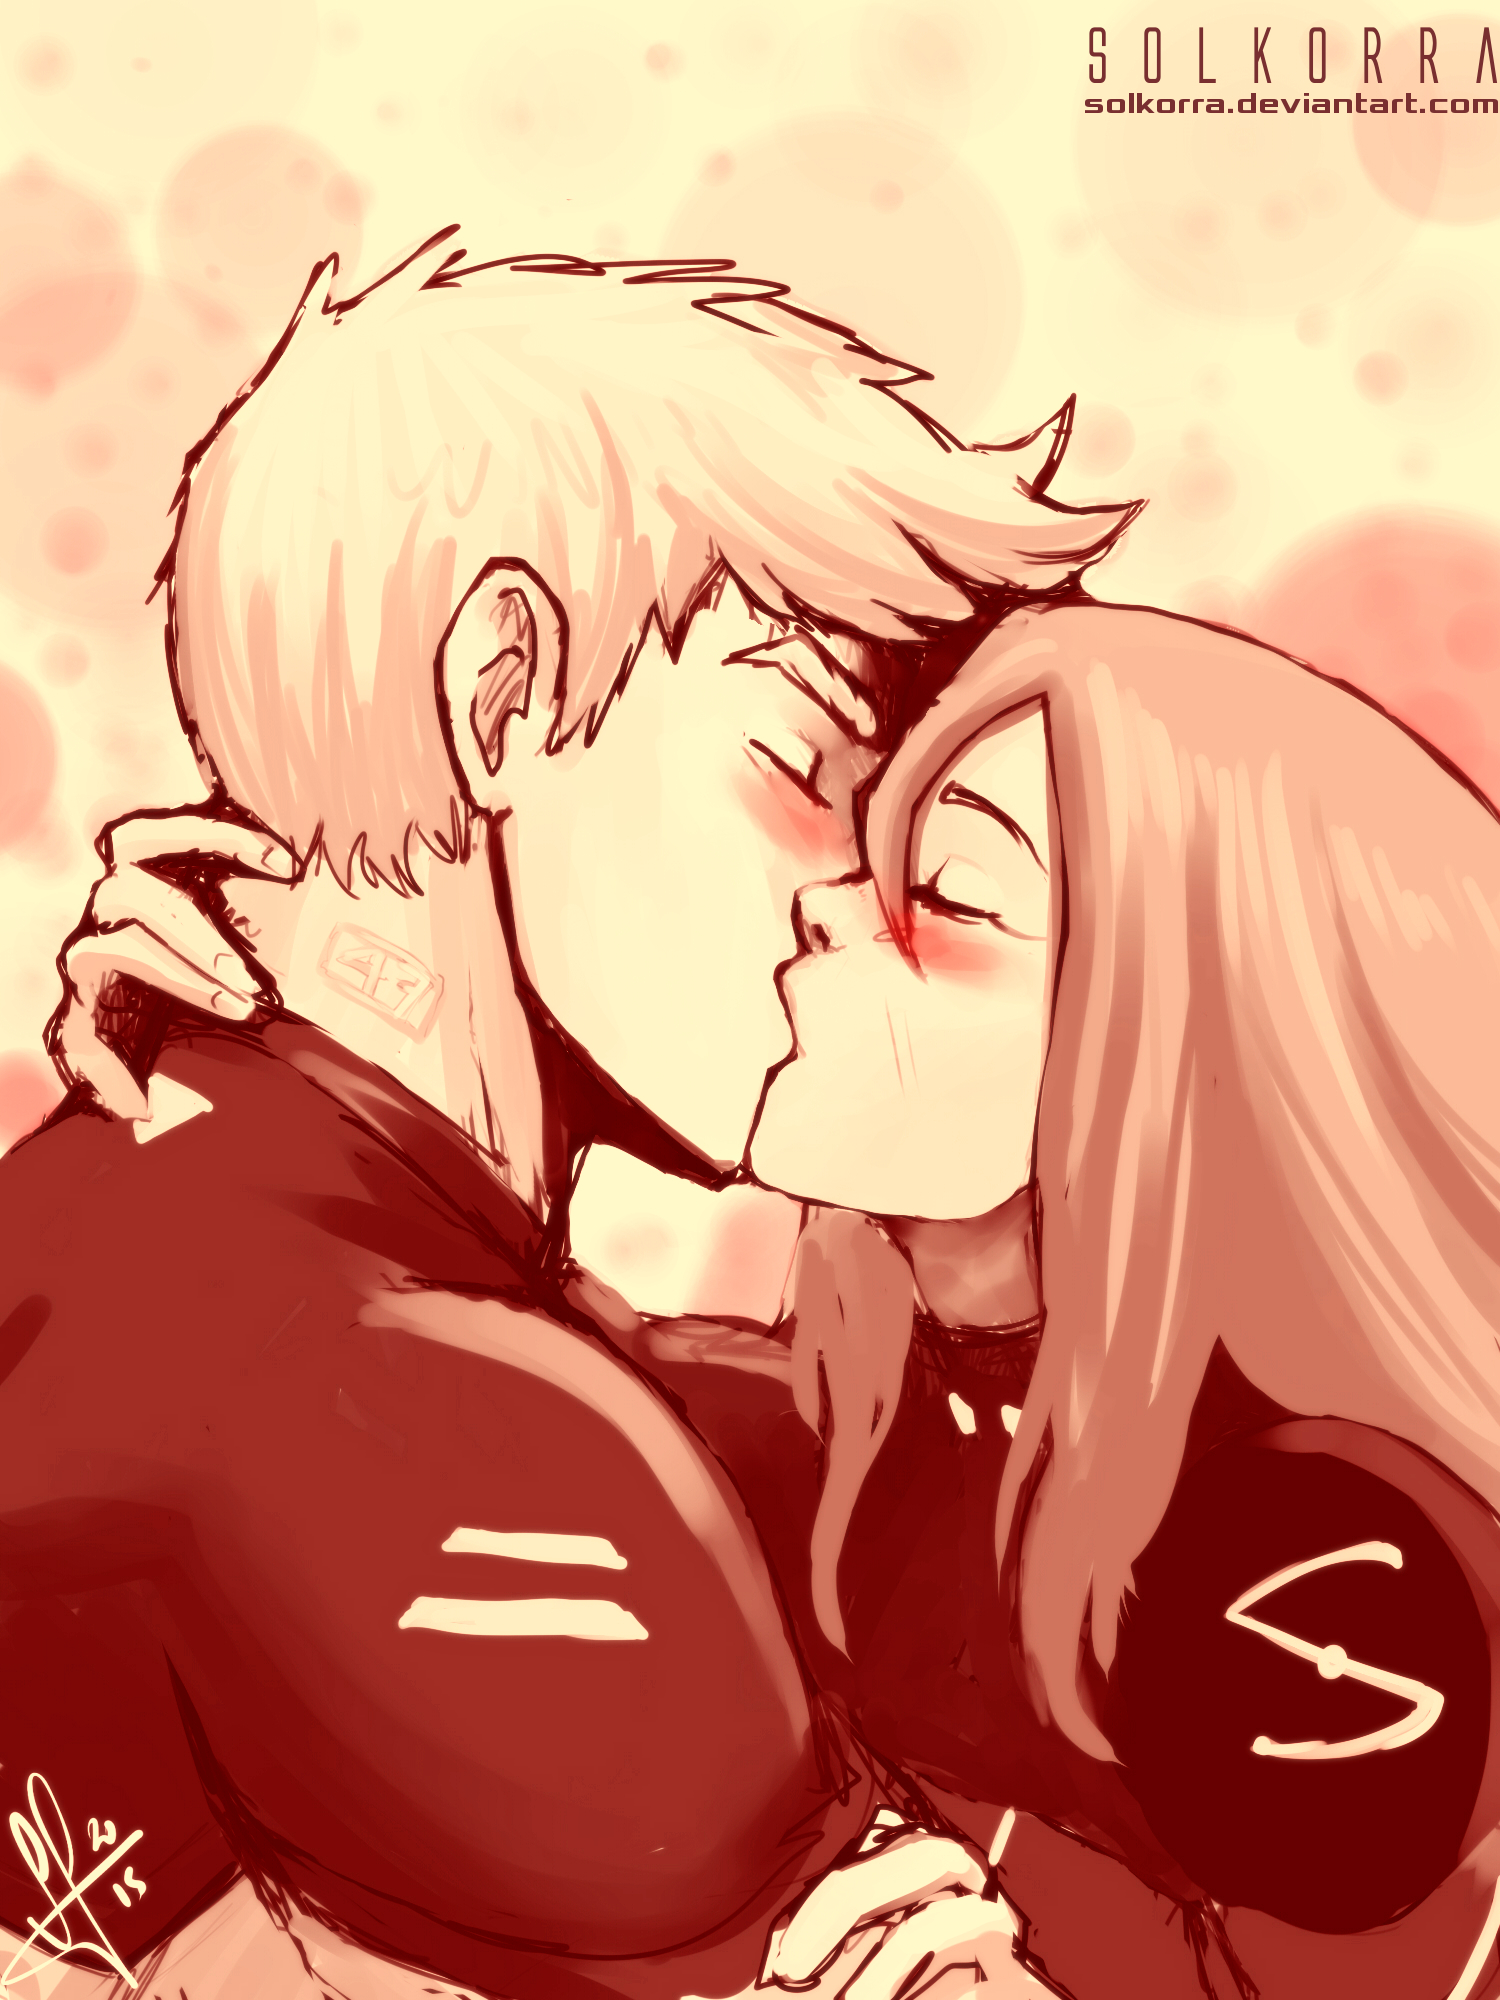 Sol and Brok: Dreaming The Kiss by SolKorra